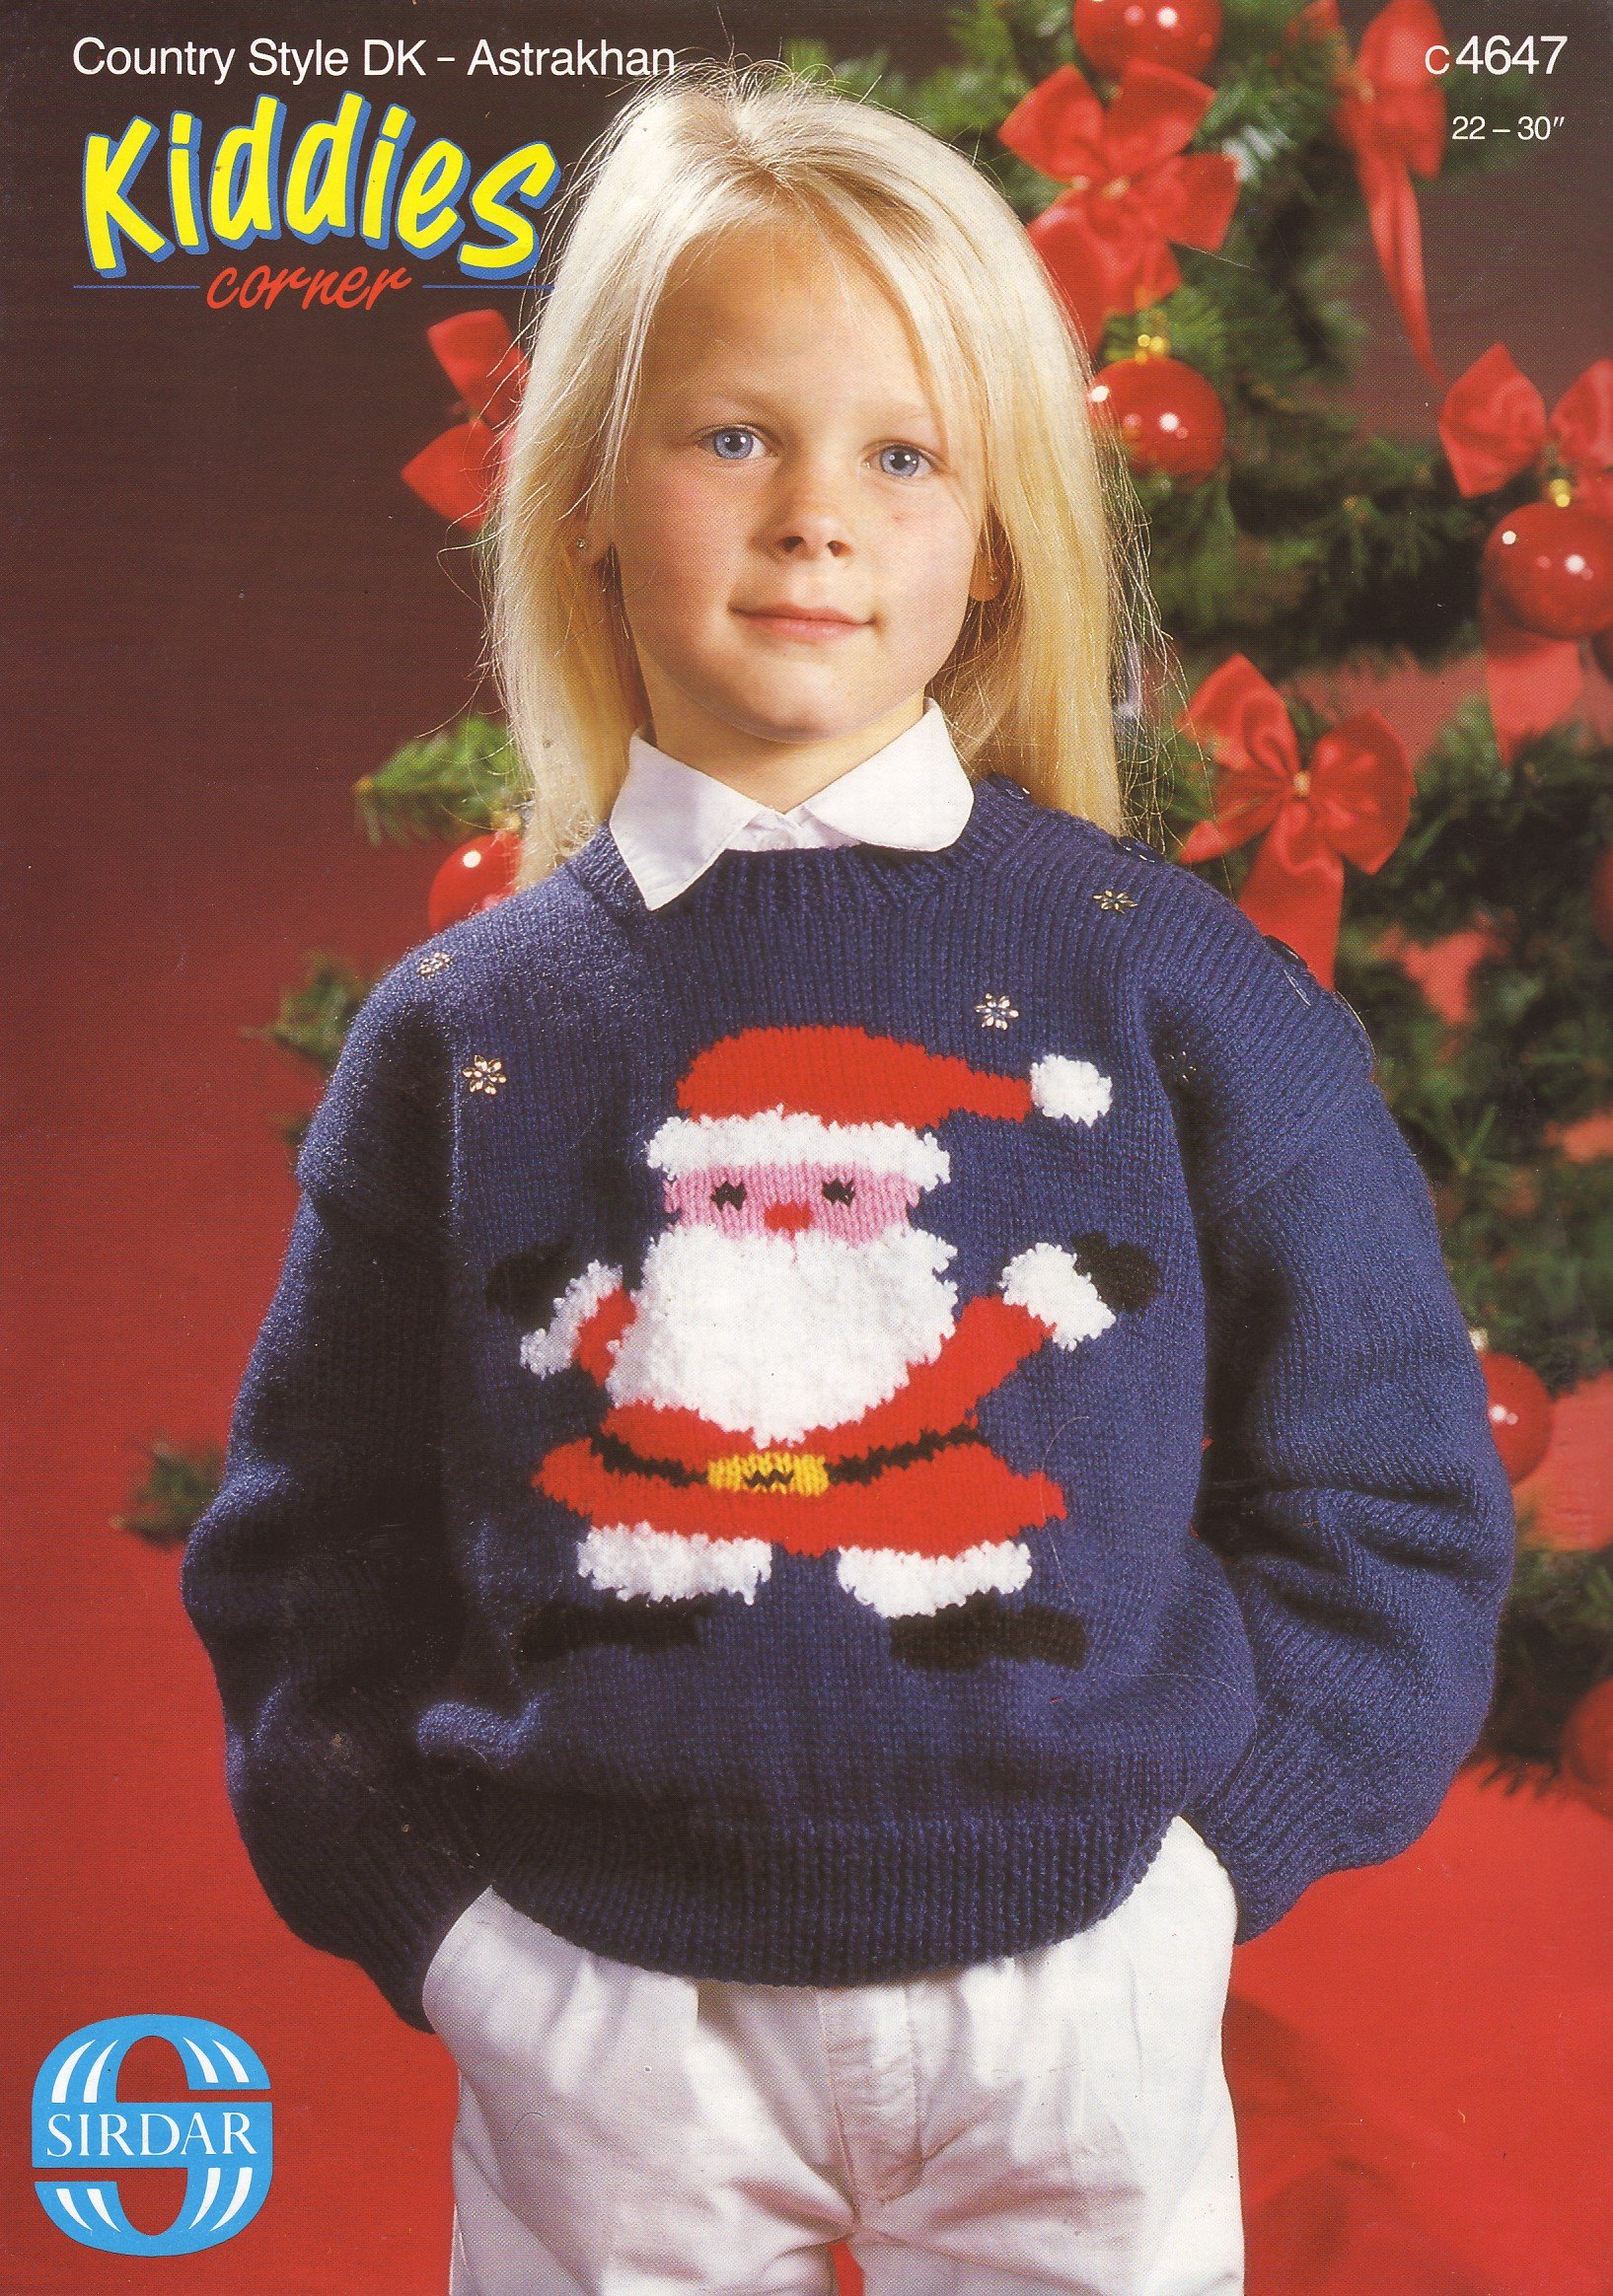 Sirdar childrens father christmas motif sweater knitting pattern sirdar childrens father christmas motif sweater knitting pattern to fit chest 22 24 26 28 30 56cm 61cm 66cm 71cm 76cm amazon sirdar books bankloansurffo Image collections